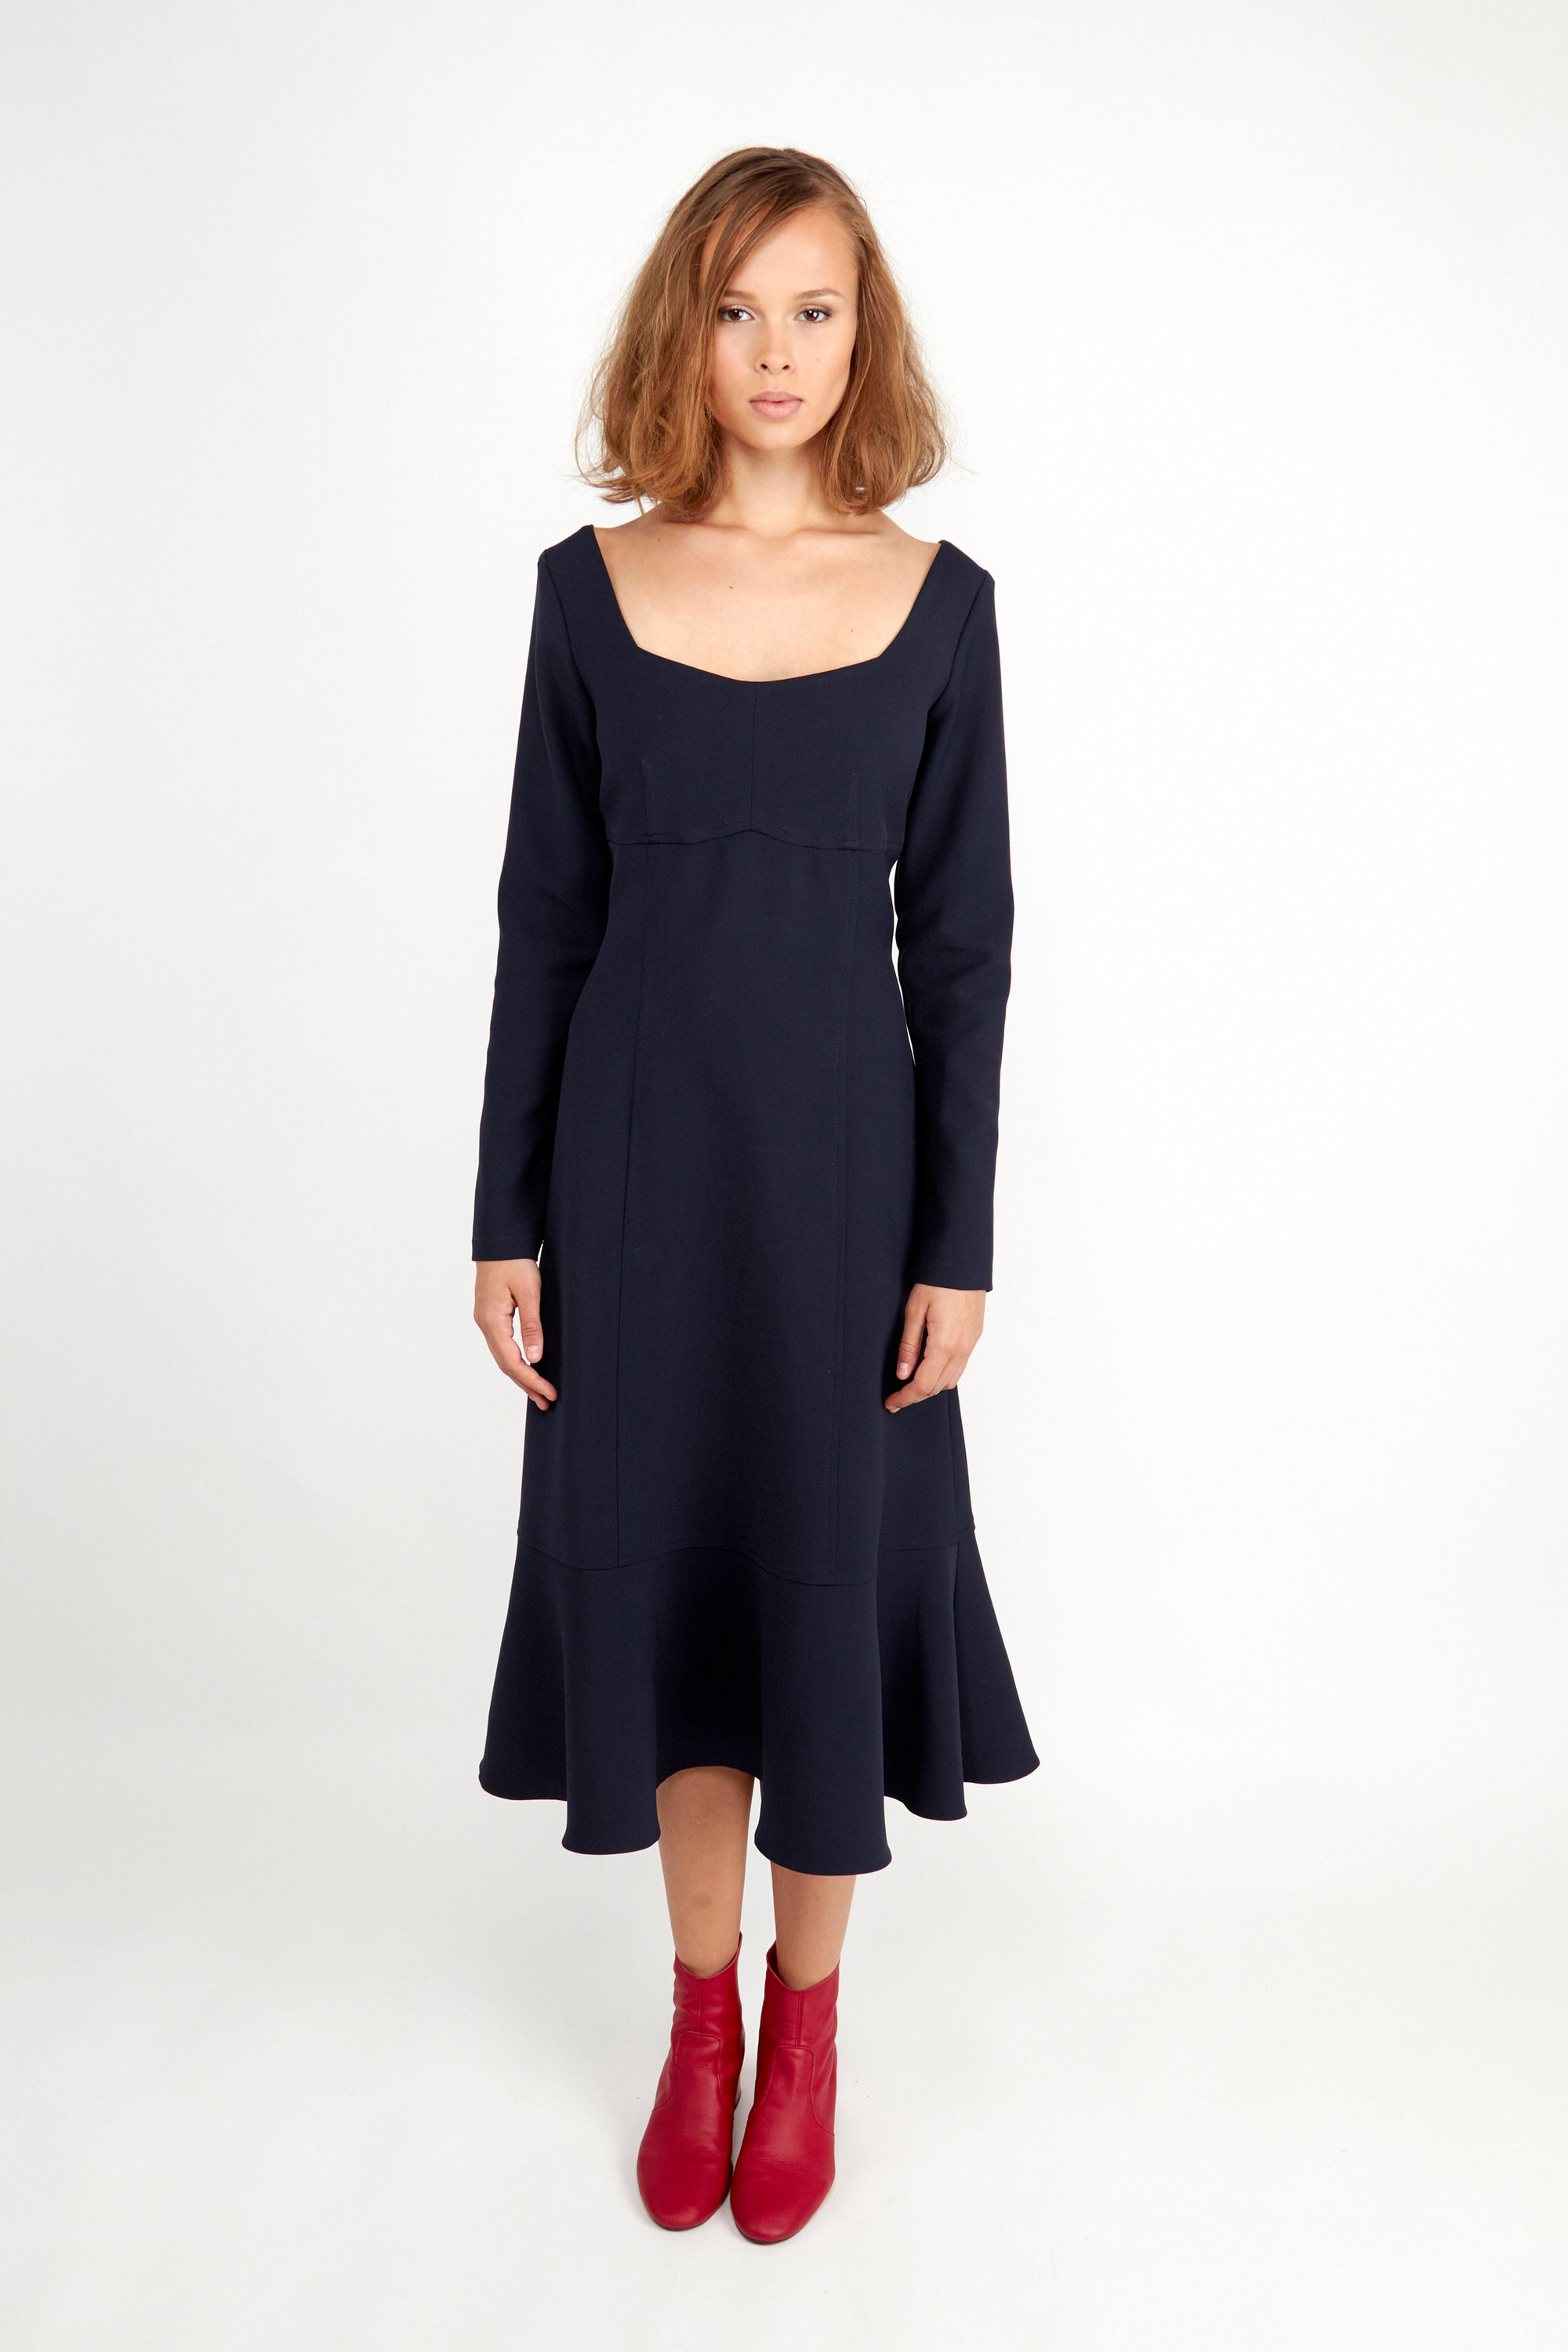 Sally Dress | Dresses & Jumpsuits | Fair Retail | [product_tag] - Fair Bazaar Ethical Living